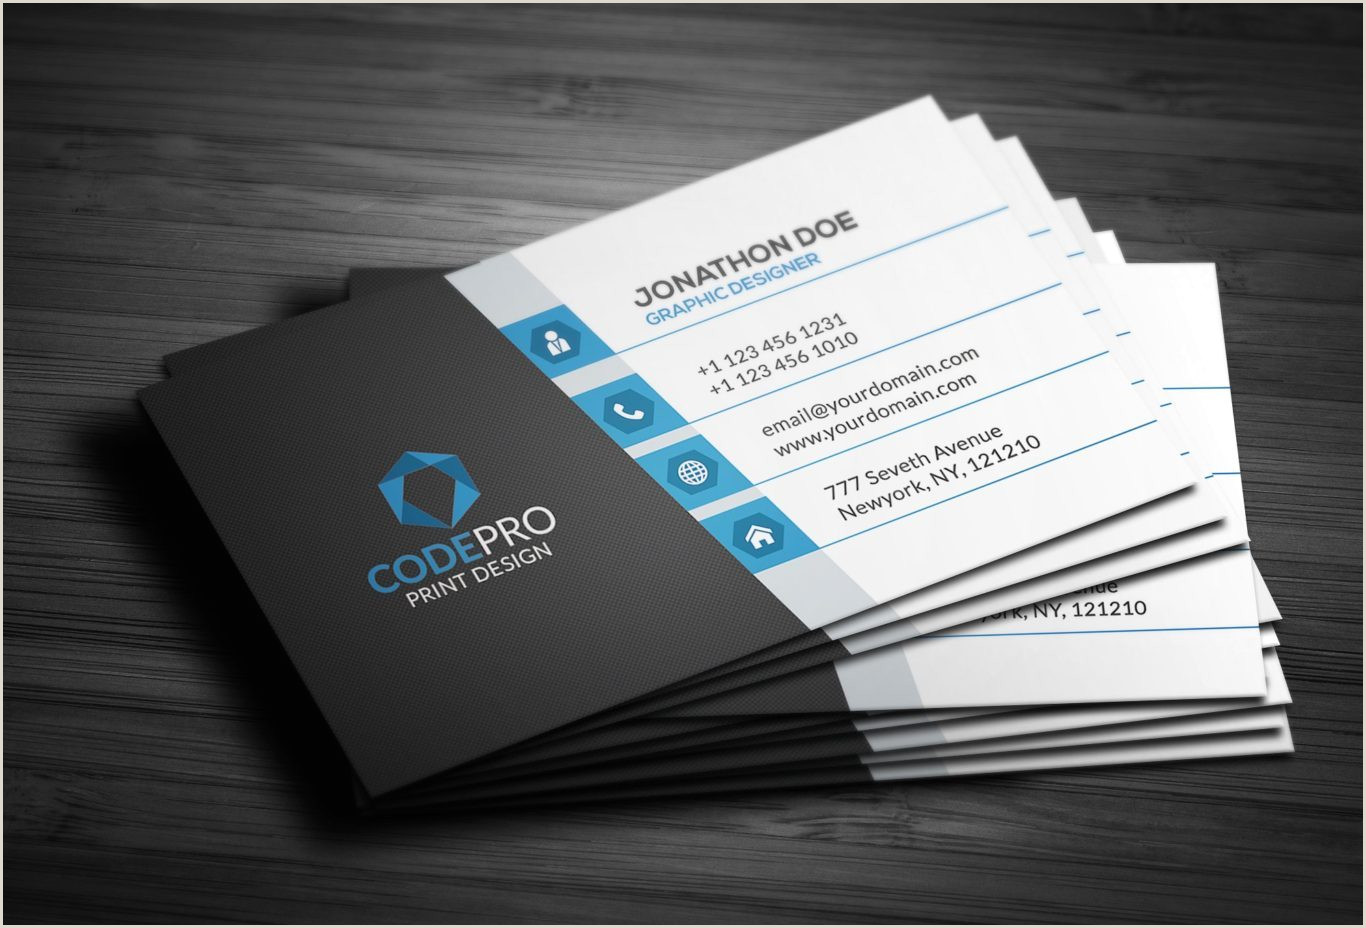 Information To Put On A Business Card What Information To Put On A Business Card Blog